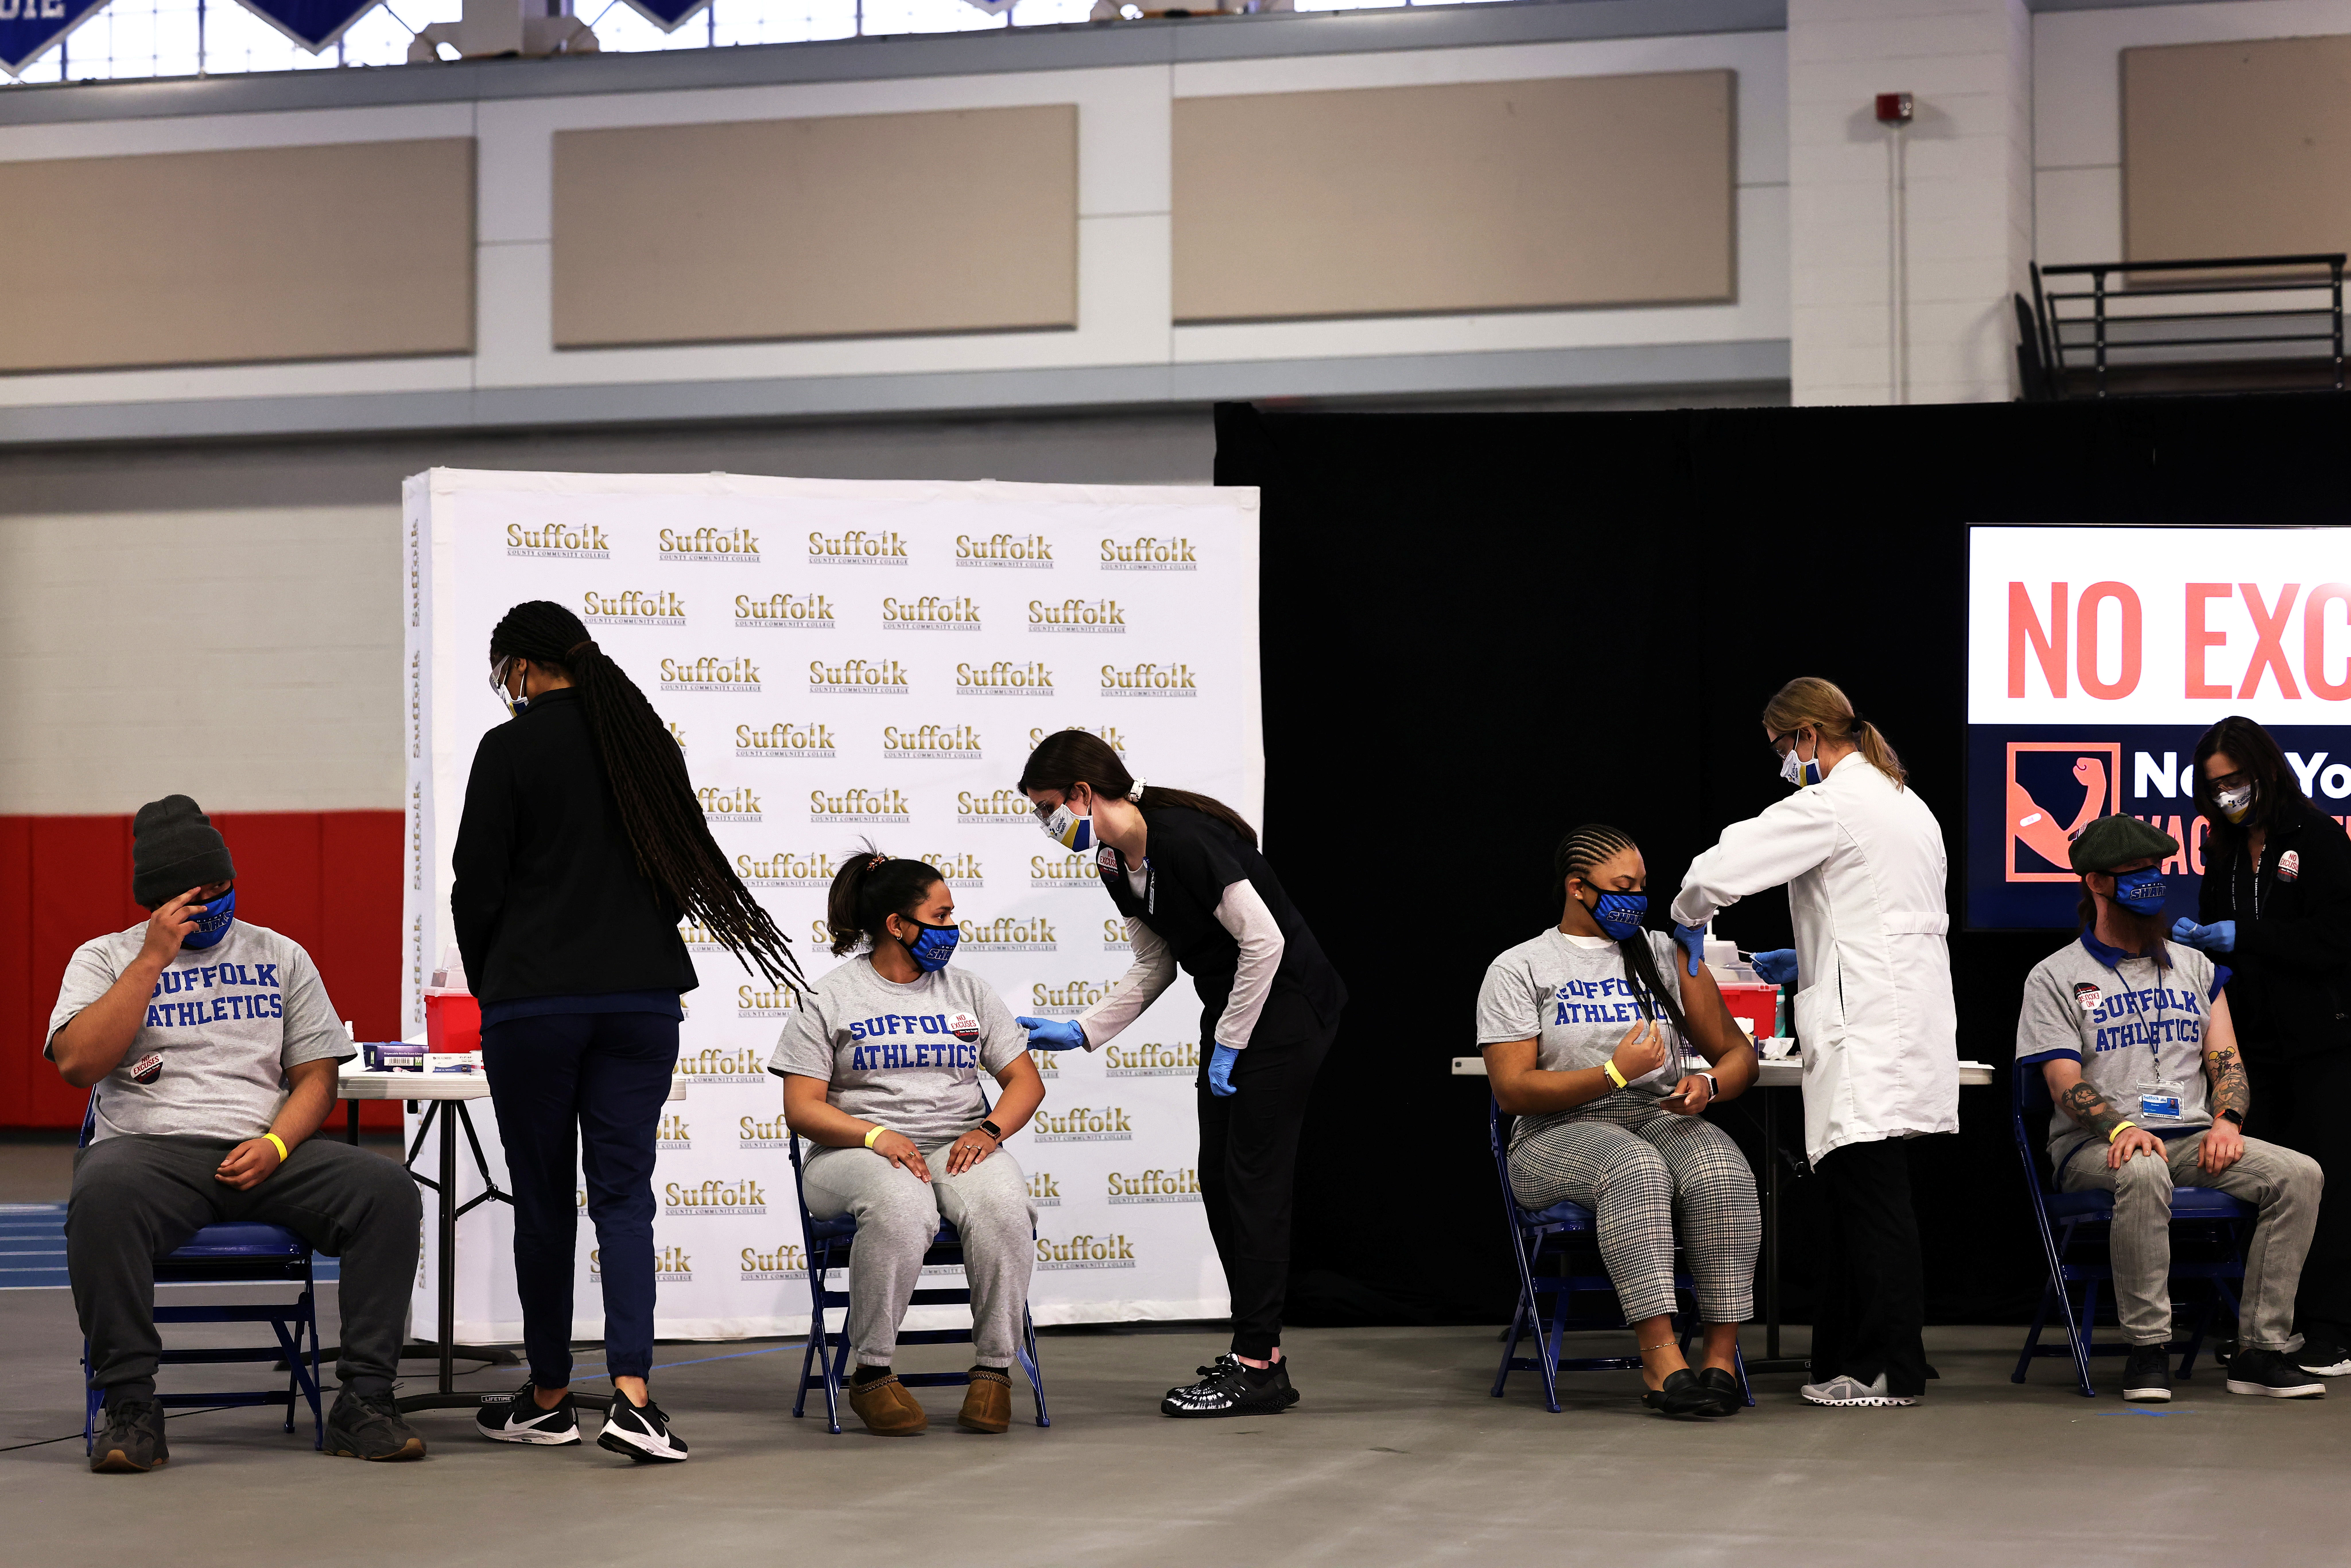 Students from Suffolk County Community College prepare to get vaccinated during a news conference on COVID-19 vaccination at Suffolk County Community College in Brentwood, New York, U.S. April 12, 2021. Michael M. Santiago/Pool via REUTERS